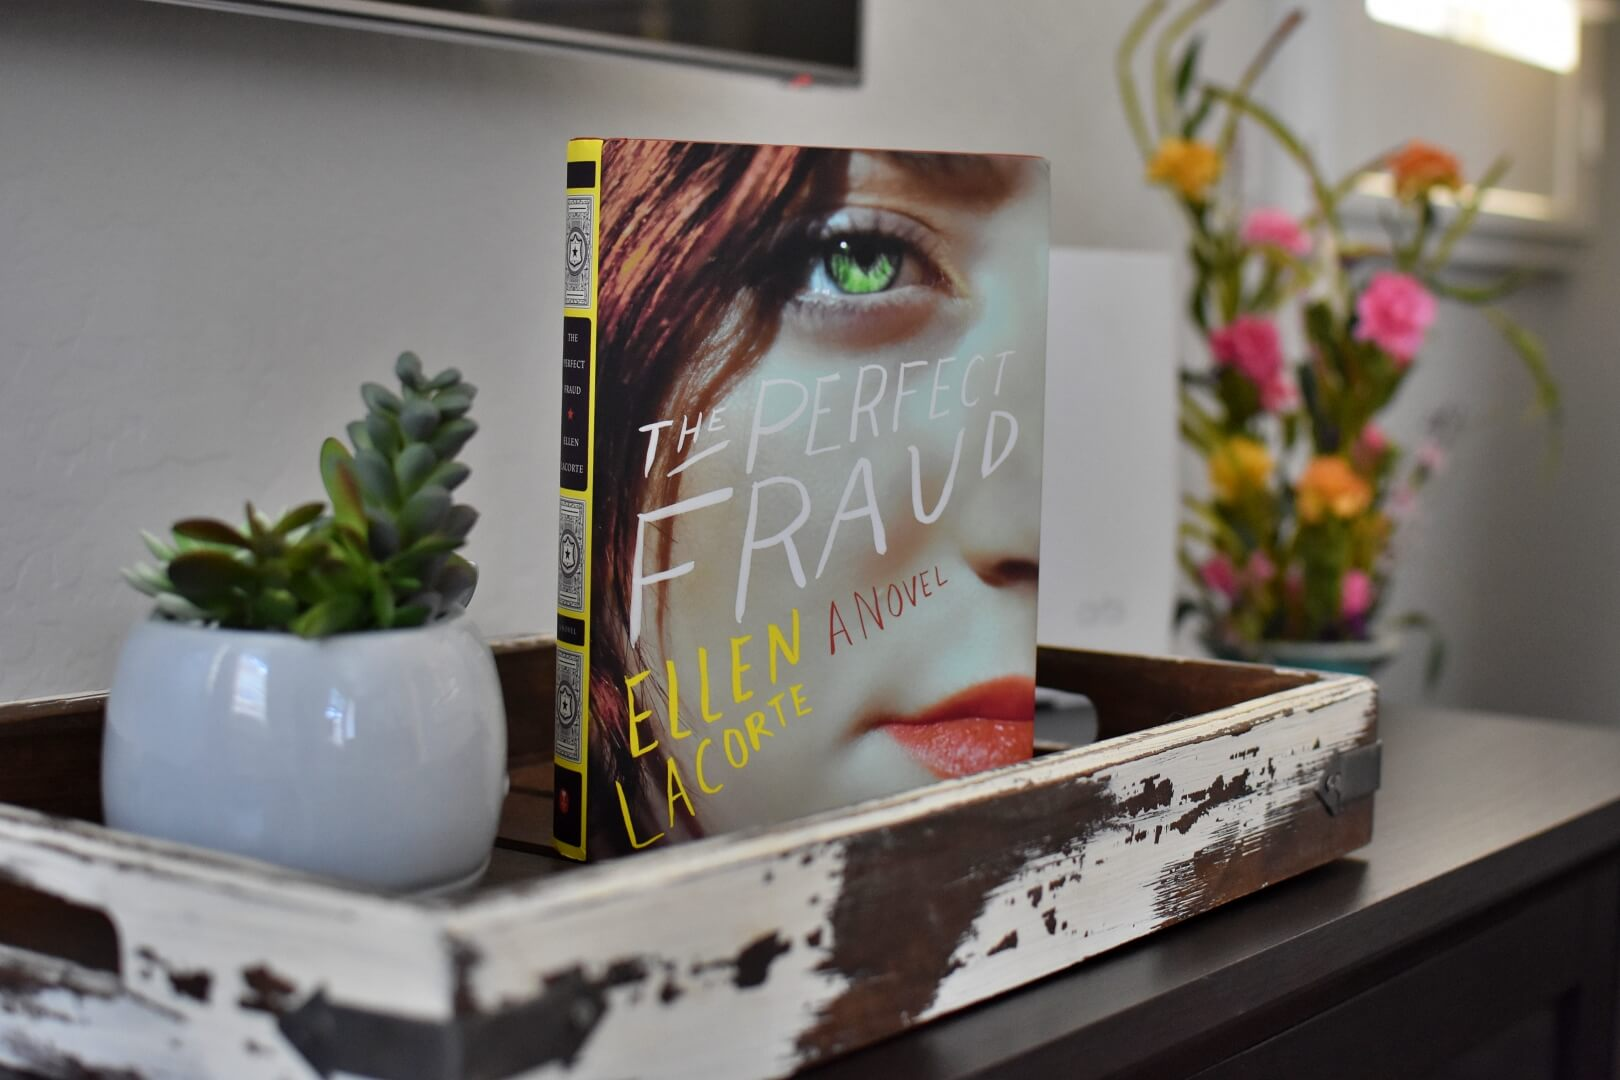 Book club questions for The Perfect Fraud by Ellen LaCorte.